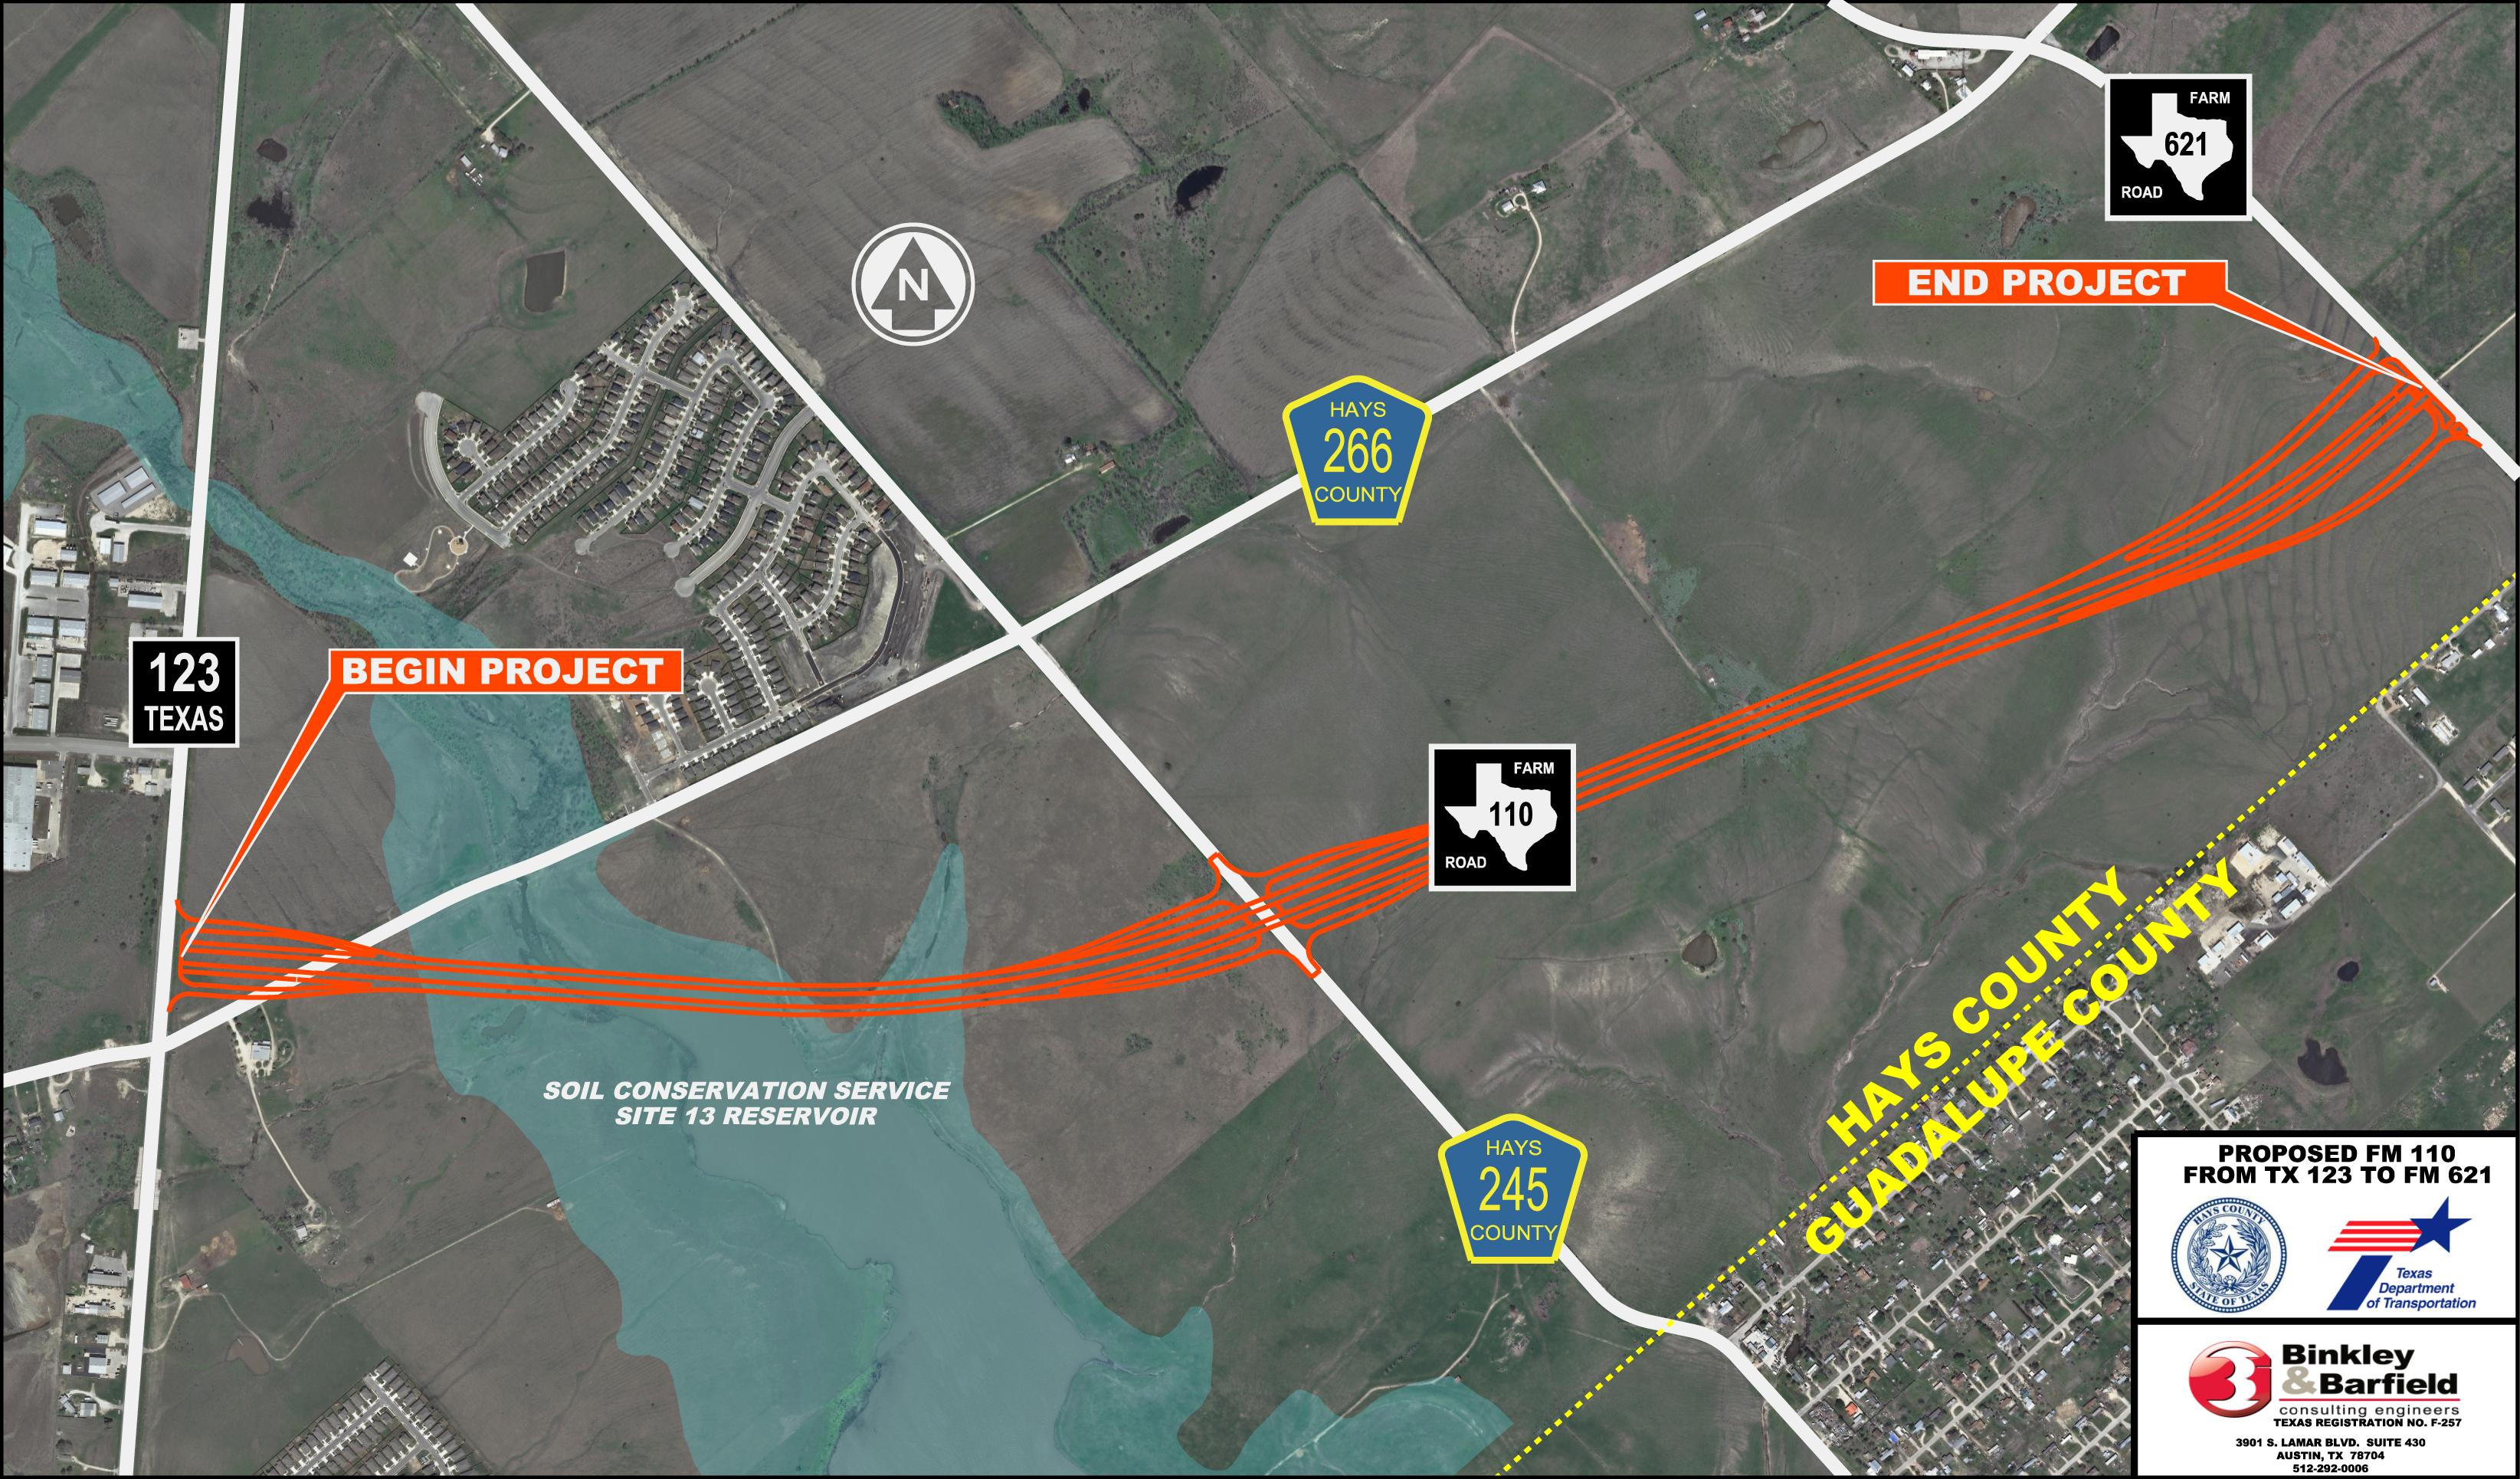 Road Projects - Hays County - Texas Highway Construction Map